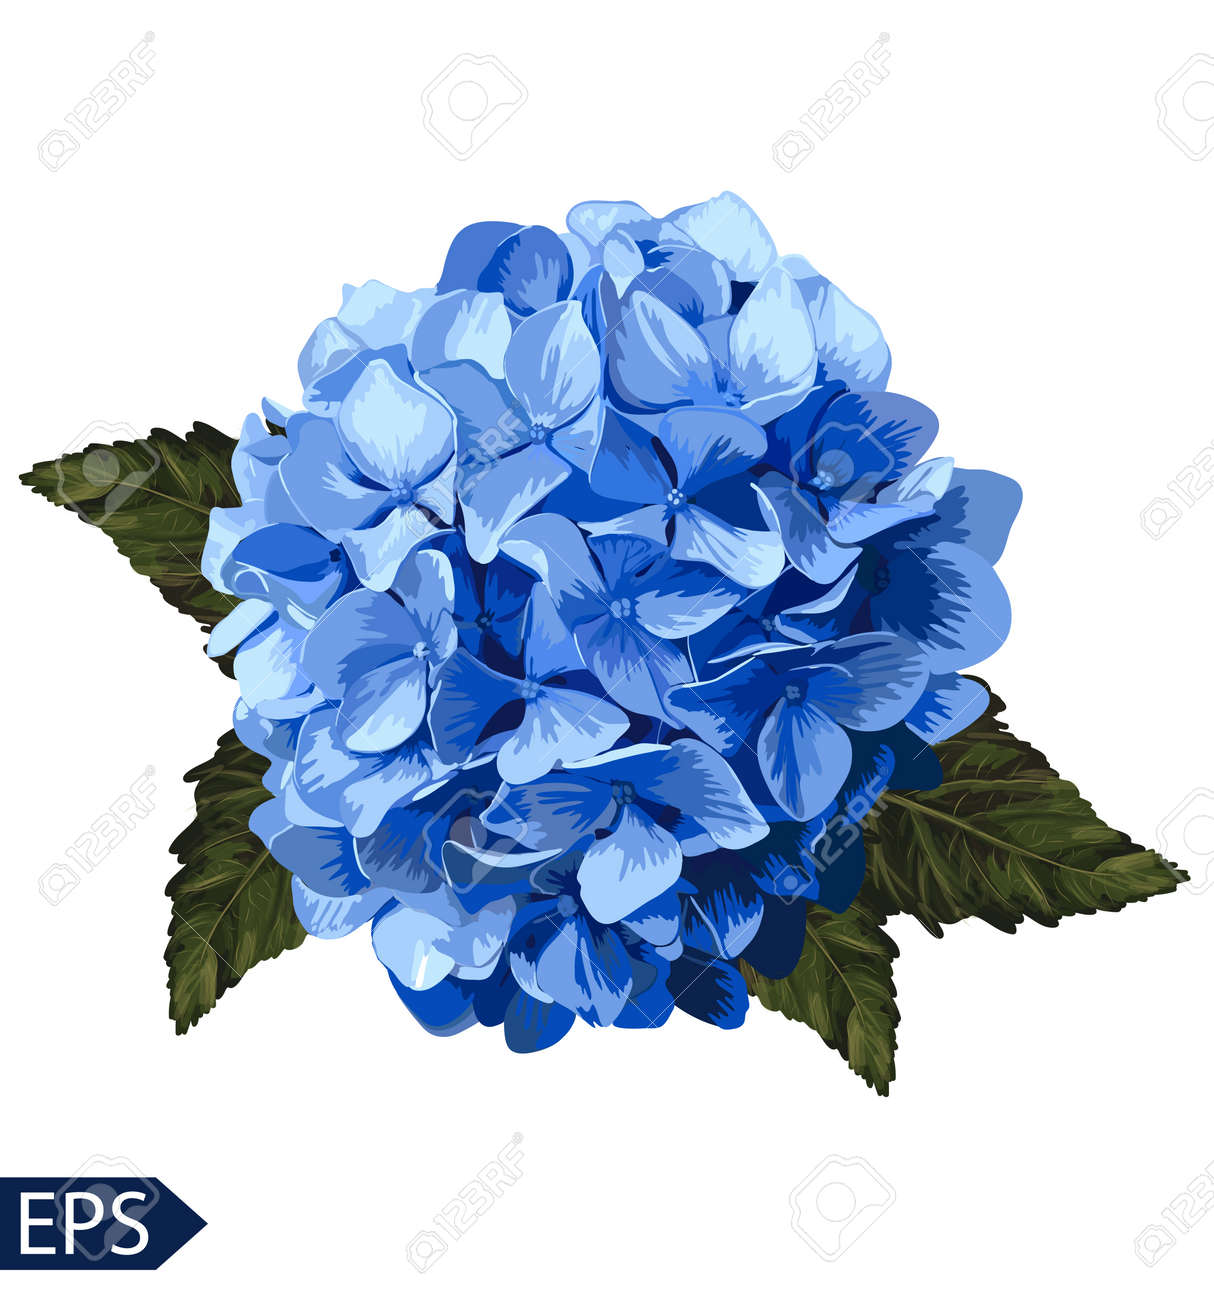 Vector Blue Realistic Hydrangea  Lavender  Illustration Of Flowers     Vector   Vector blue realistic hydrangea  lavender  Illustration of flowers   Vintage  Can be used for gift wrapping paper  EPS